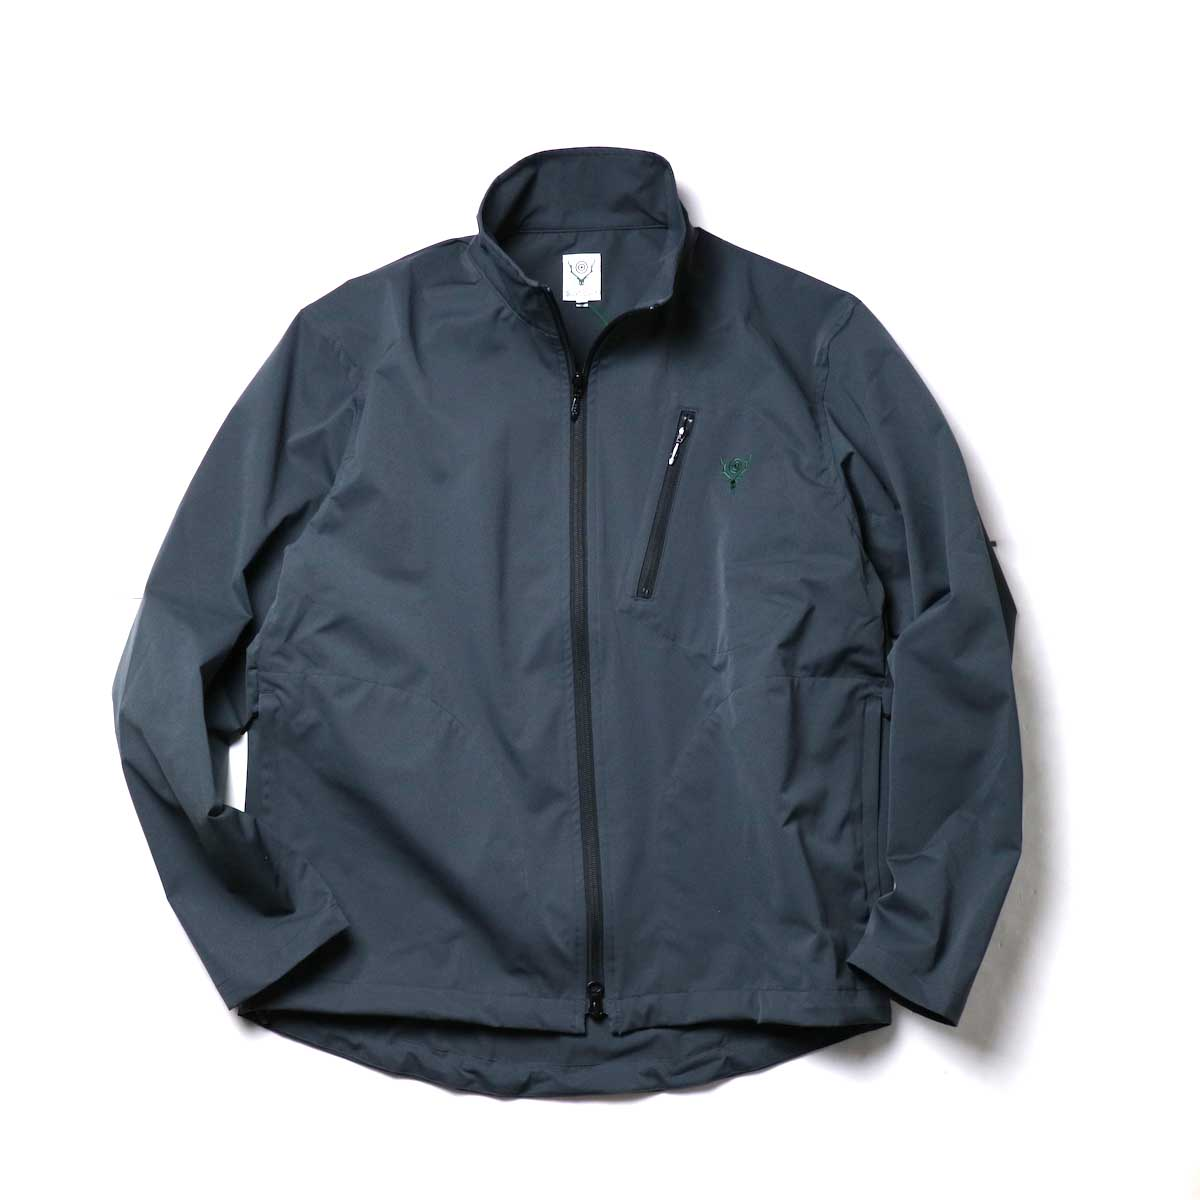 South2 West8 / Boulder Shirt -Poly Stretch Twill (Charcoal)